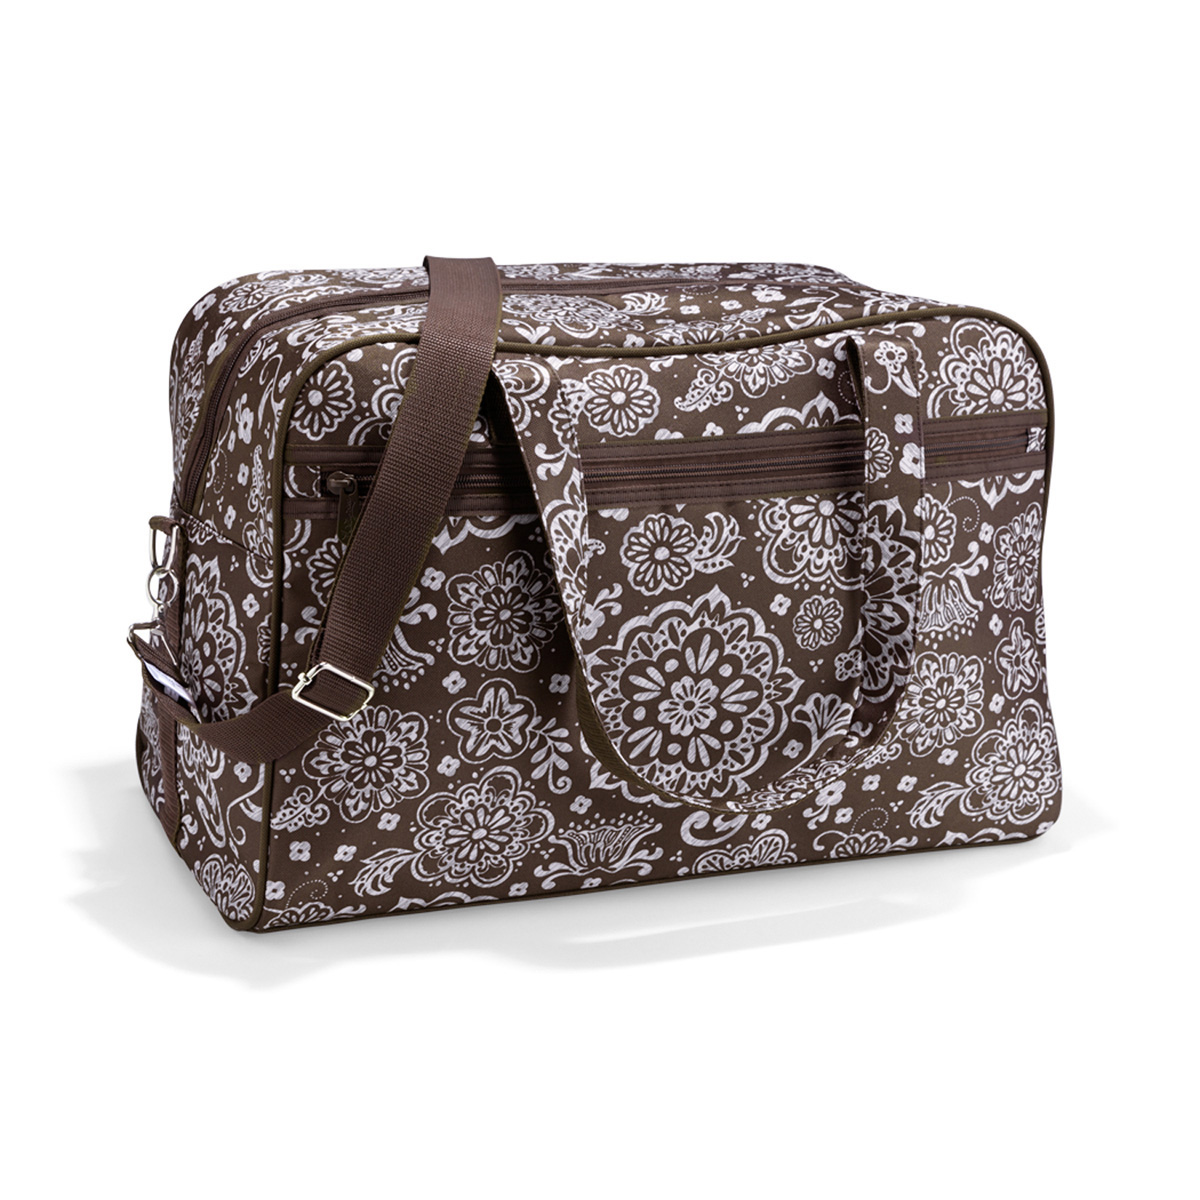 Thirty One Promo Codes December Thirty One Promo Codes in December are updated and verified. Today's top Thirty One Promo Code: As much as 70% Off Christmas In July Sale.